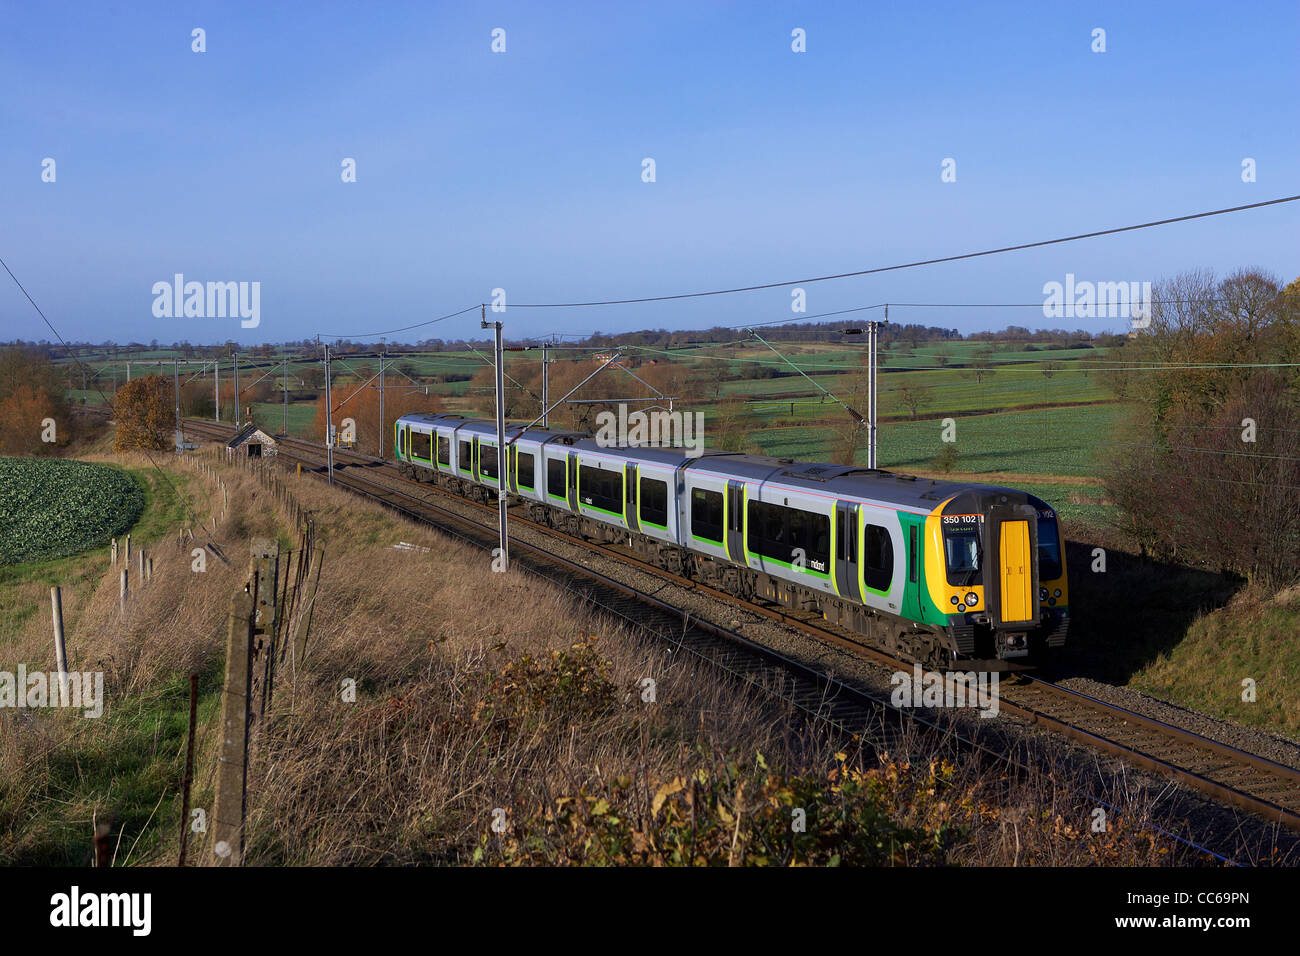 london midland class 350 heads south to london euston on a west coast mainline service november 2011. - Stock Image